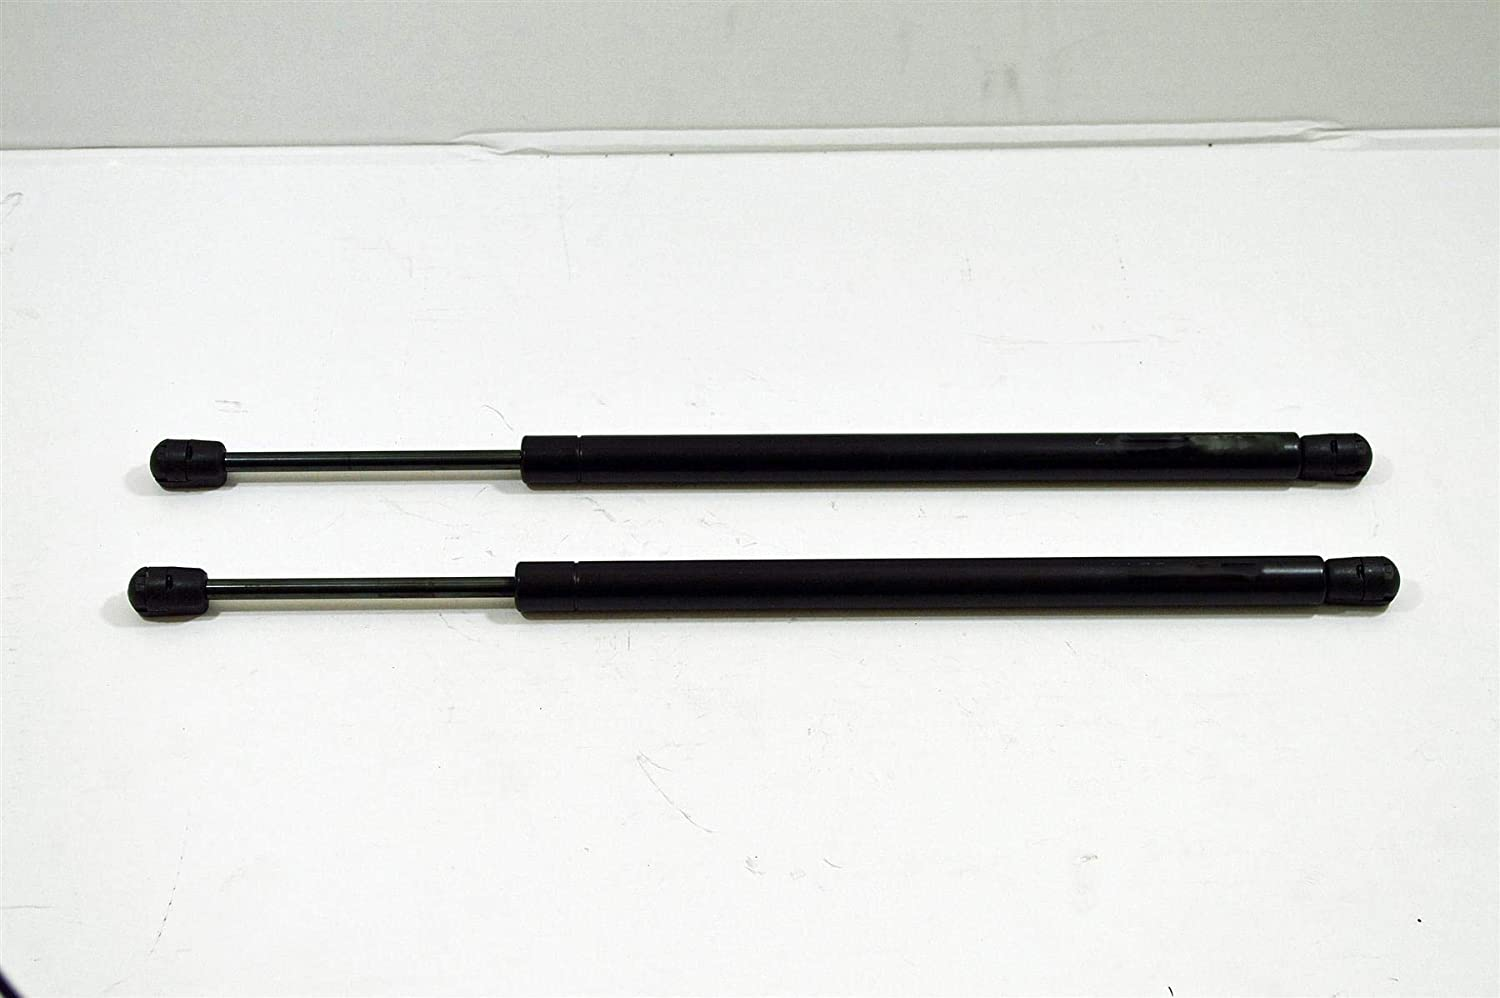 LSC 13122695 2 x Rear Tailgate//Boot Struts PAIR NEW from LSC